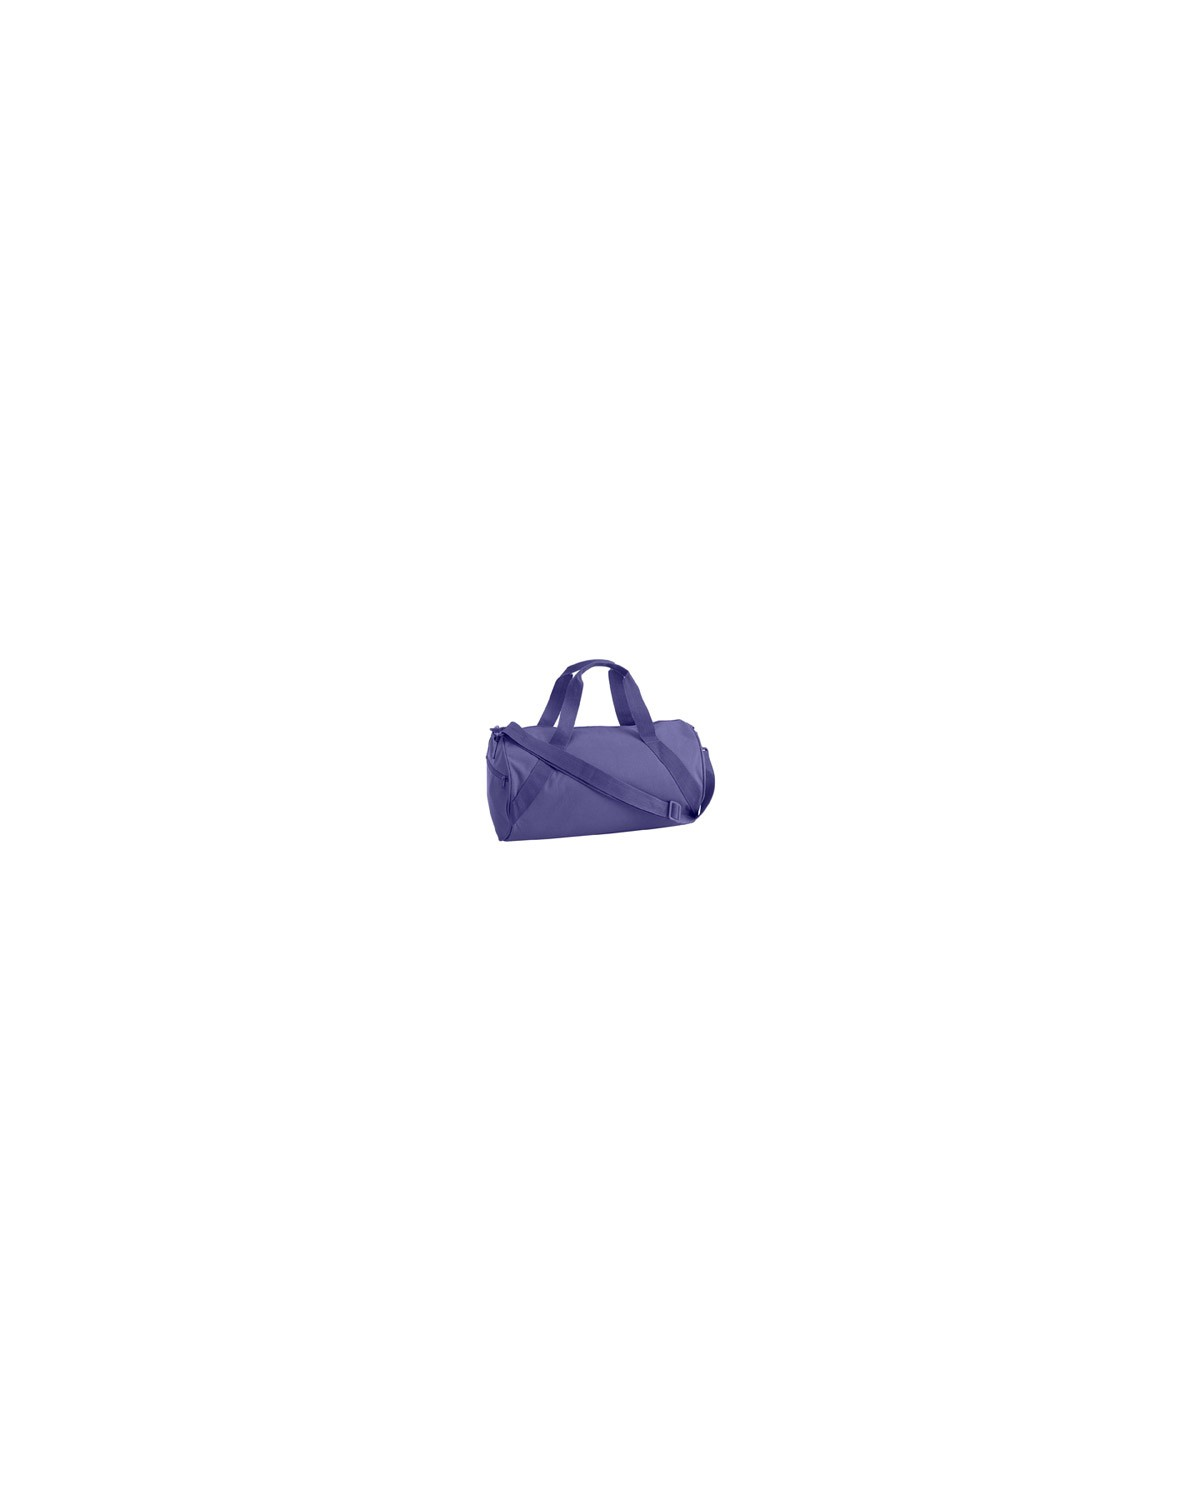 8805 Liberty Bags PURPLE